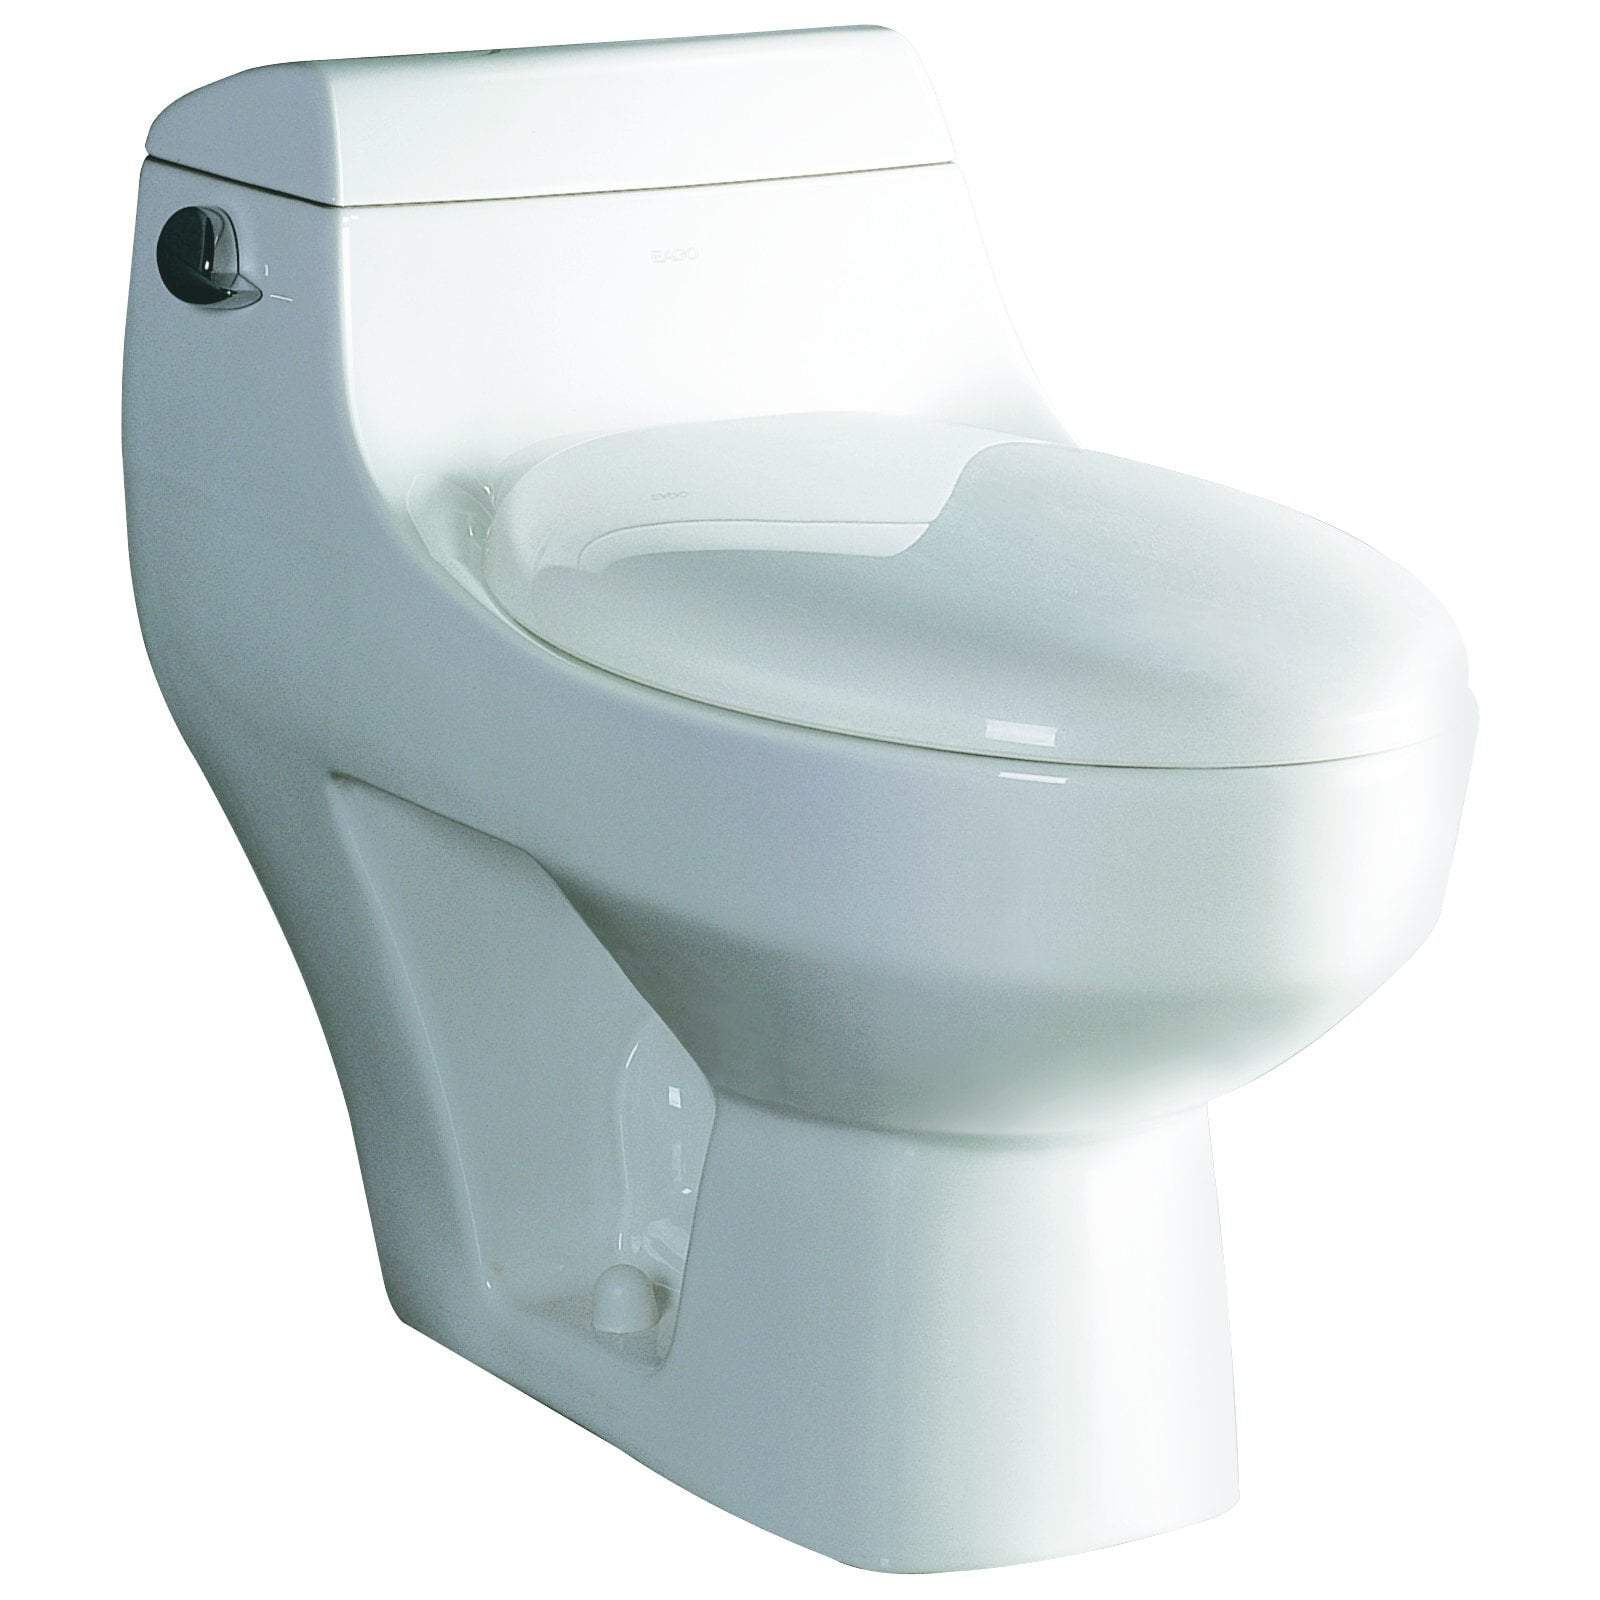 ONE PIECE HIGH EFFICIENCY LOW FLUSH ECO-FRIENDLY CERAMIC TOILET